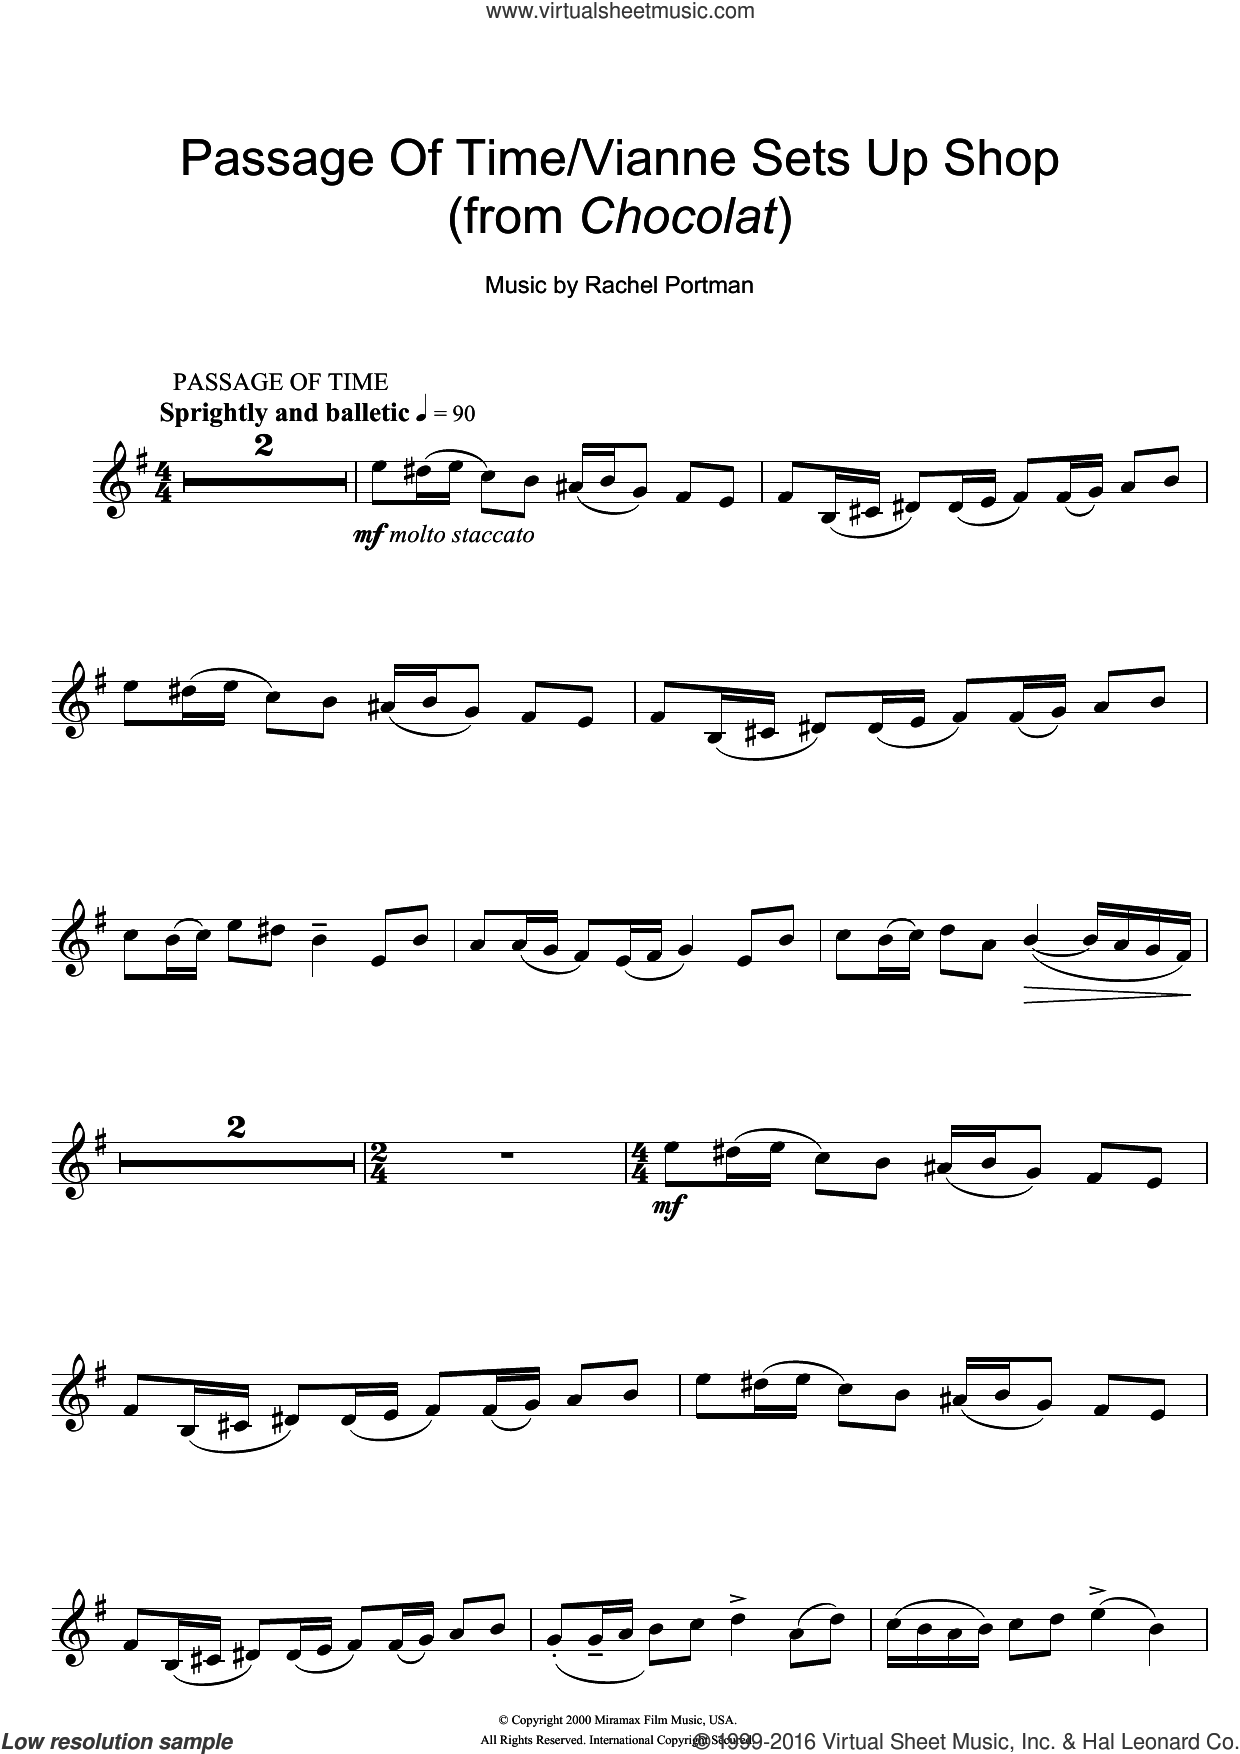 Passage Of Time/Vianne Sets Up Shop (from Chocolat) sheet music for violin solo by Rachel Portman, intermediate skill level